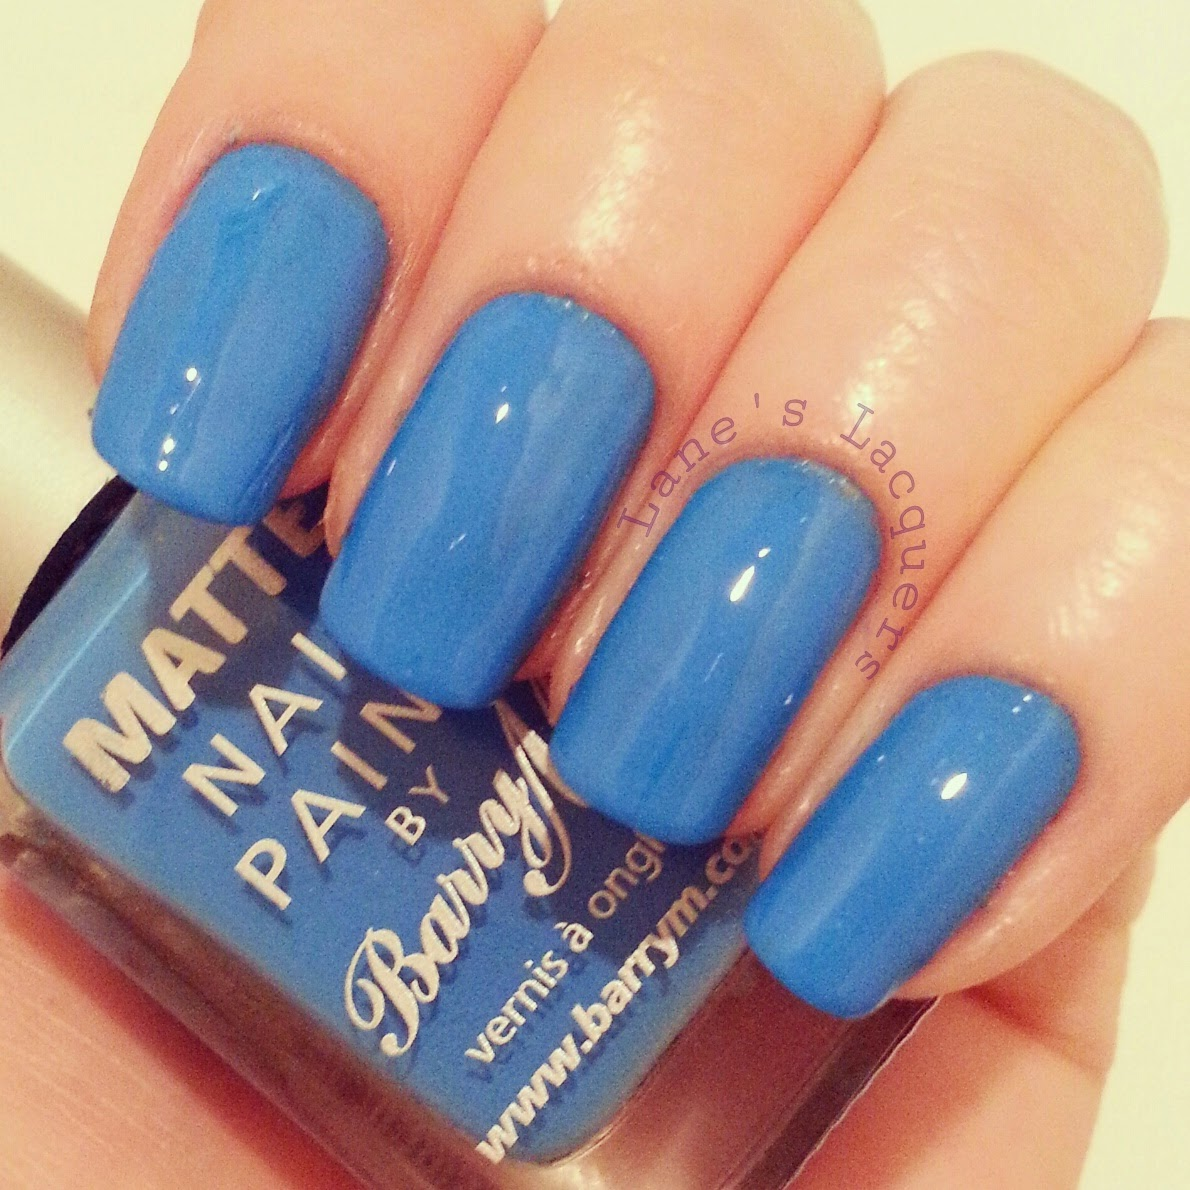 barry-m-malibu-swatch-manicure (3)